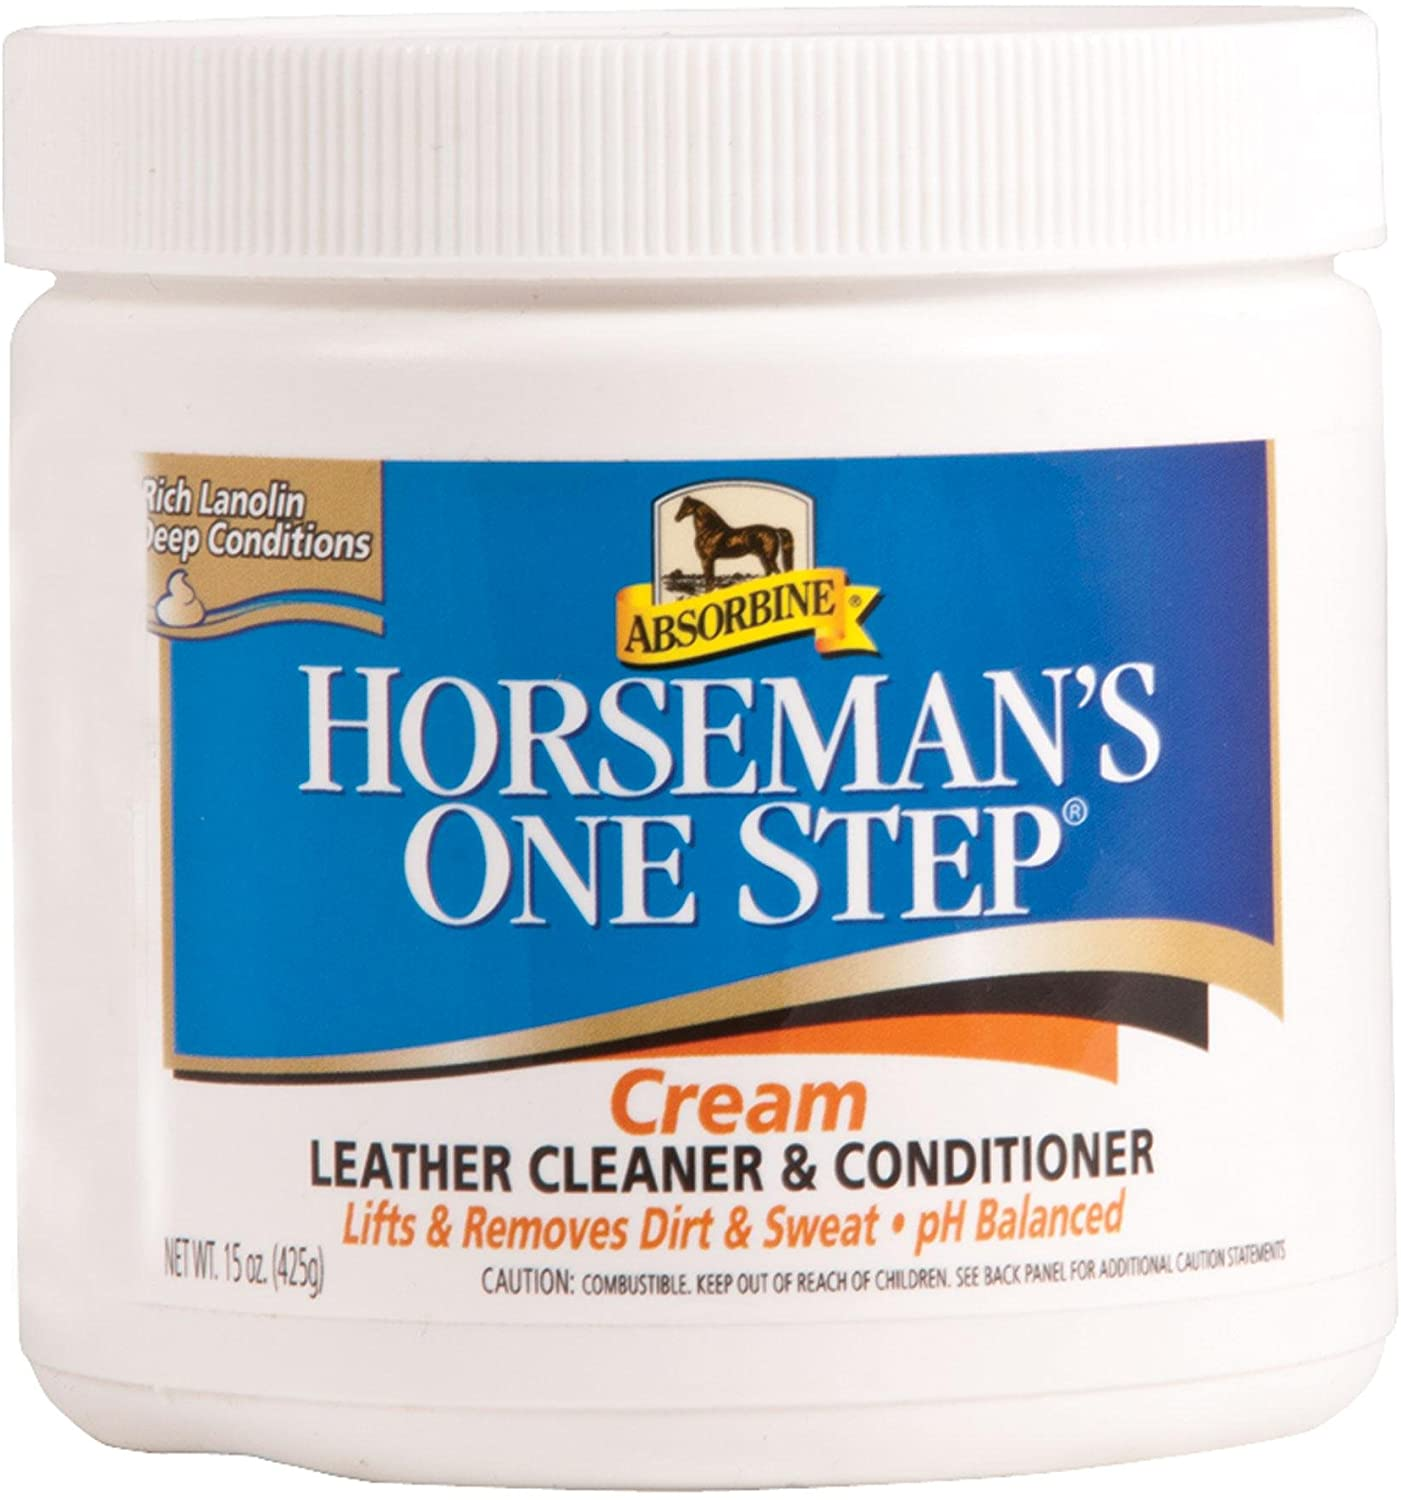 Absorbine 15 Oz Horseman's One Step Leather Cleaner and Conditioner Cream That Removes Dirt, Sweat and Salt